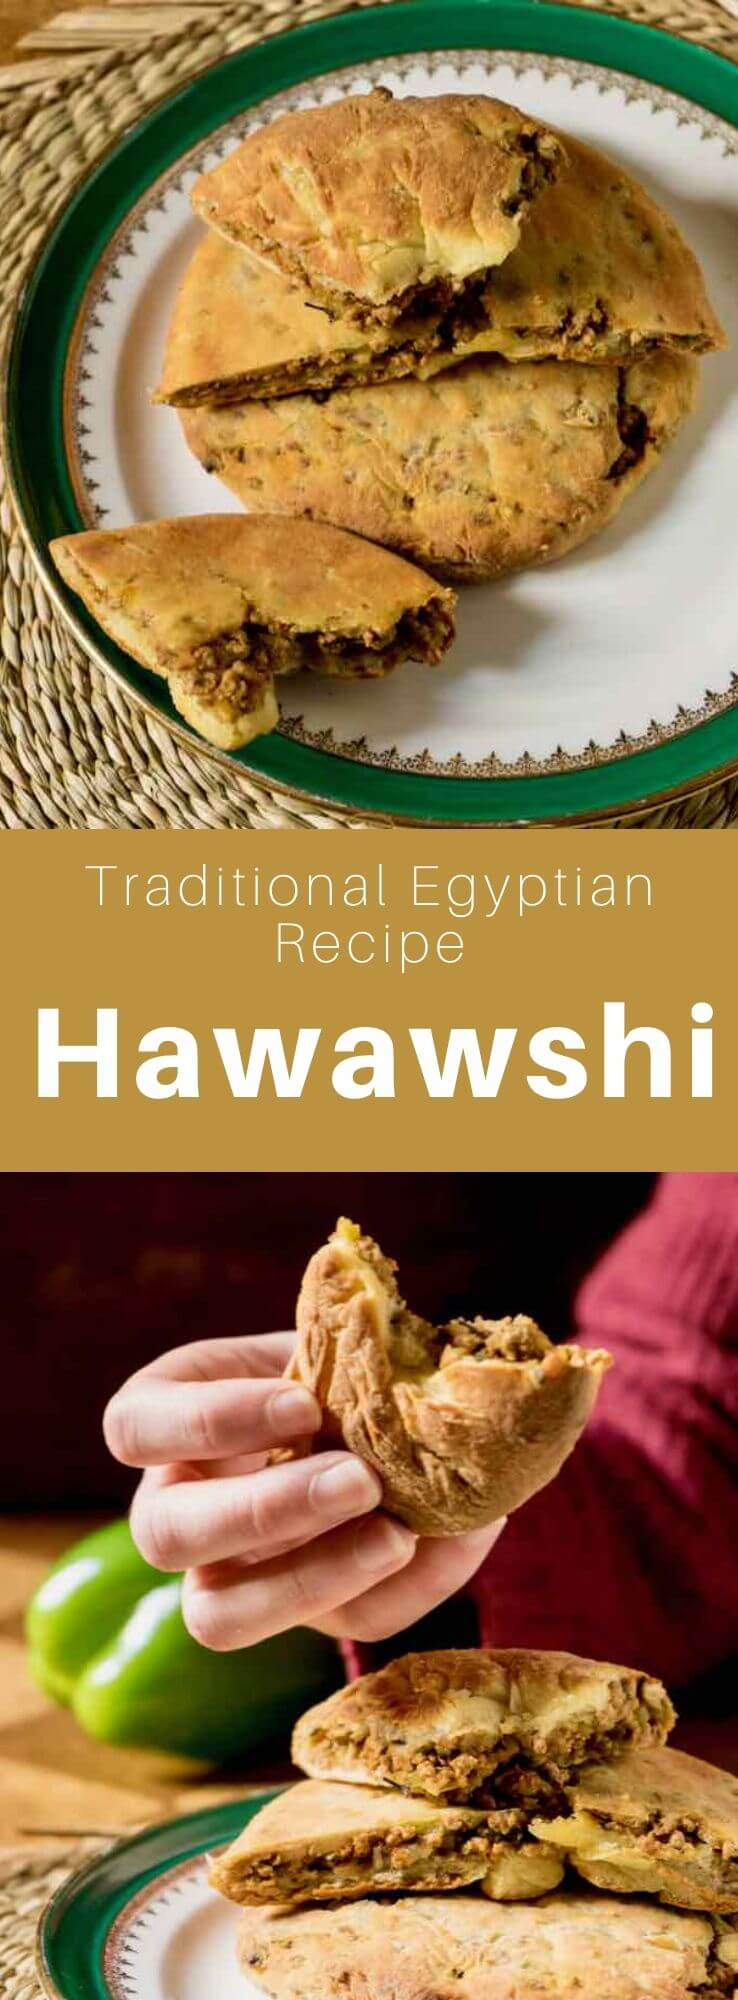 Hawawshi is a delicious traditional sandwich from Egypt that is prepared with flat bread that is stuffed with spicy ground meat. #Egypt #EgyptianCuisine #EgyptianFood #EgyptianRecipe #WorldCuisine #196flavors